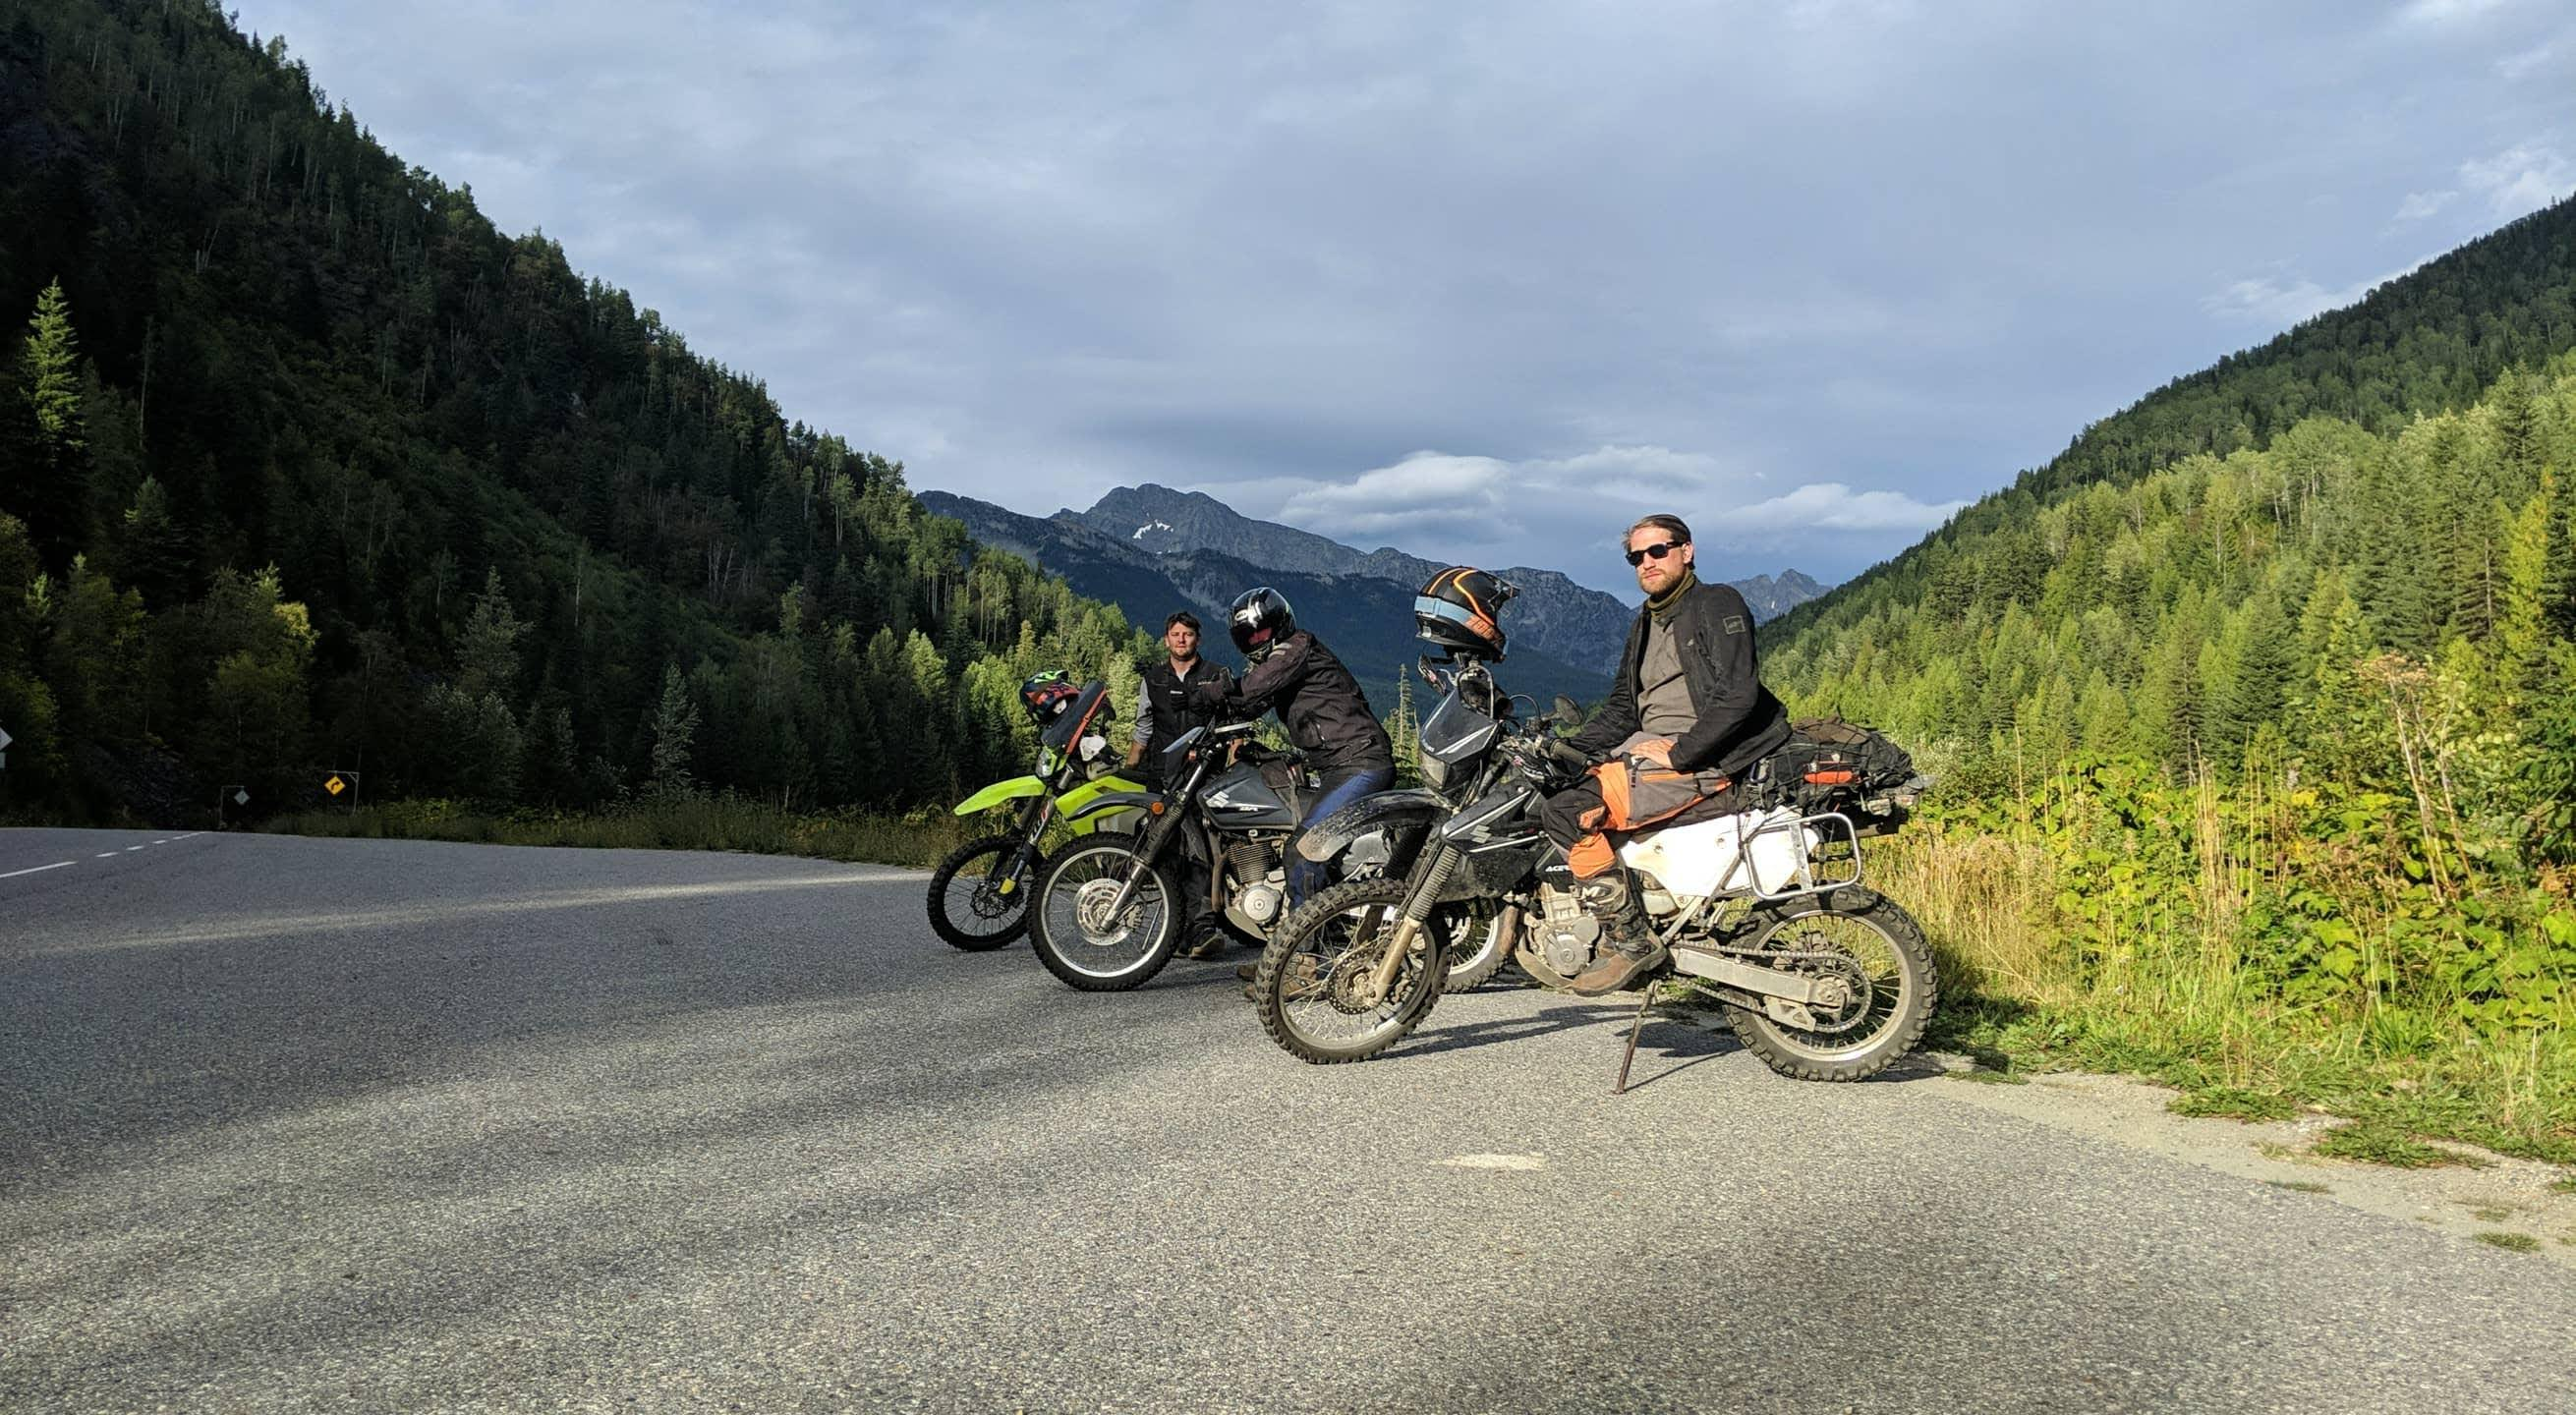 bikes along canadian border patrol route